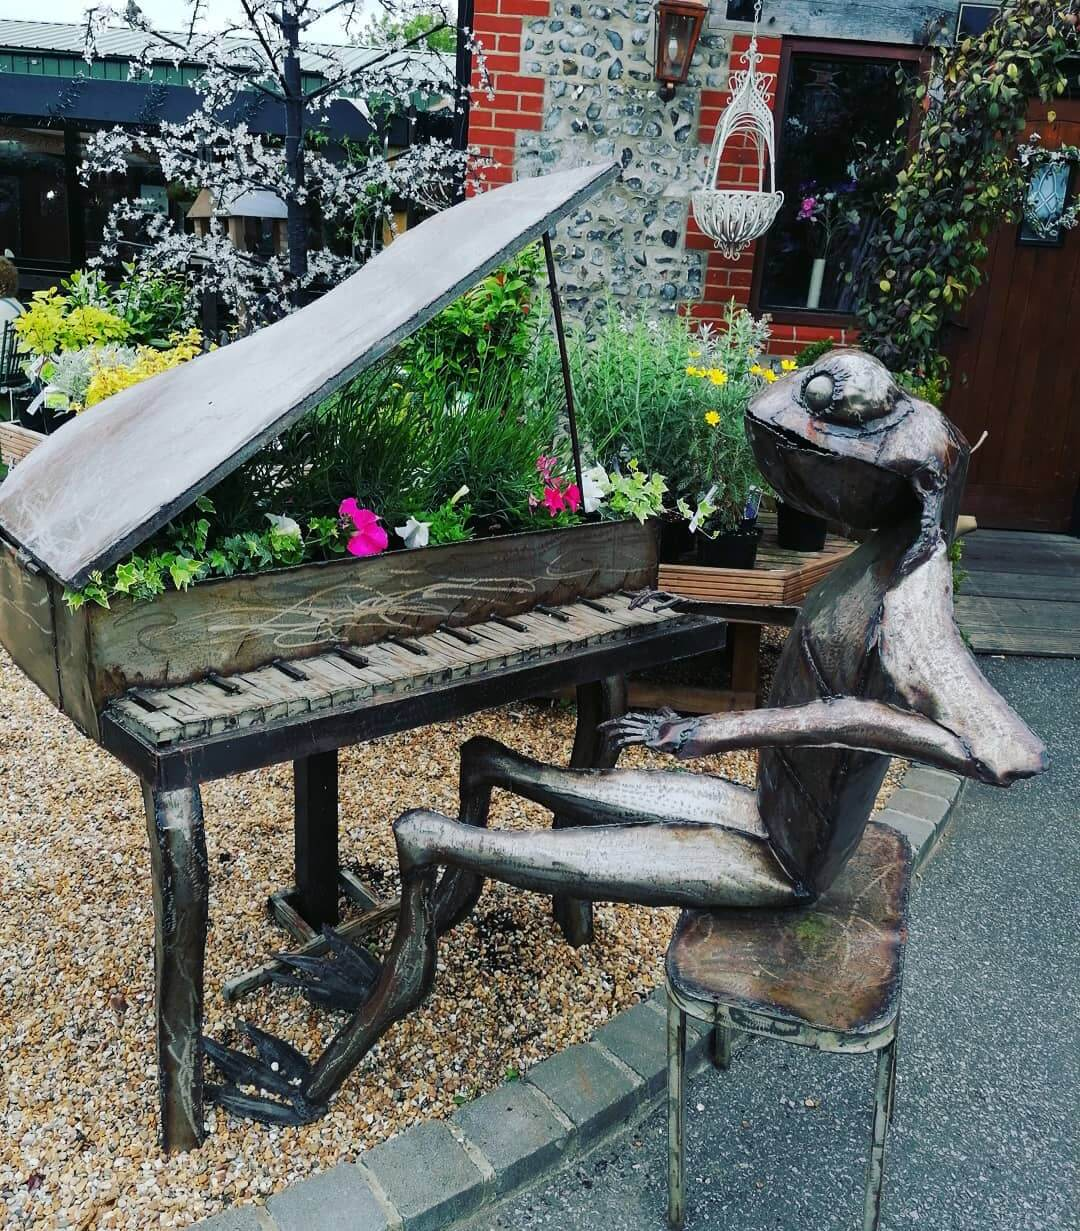 Found a frog playing the piano on bank Holidays travels